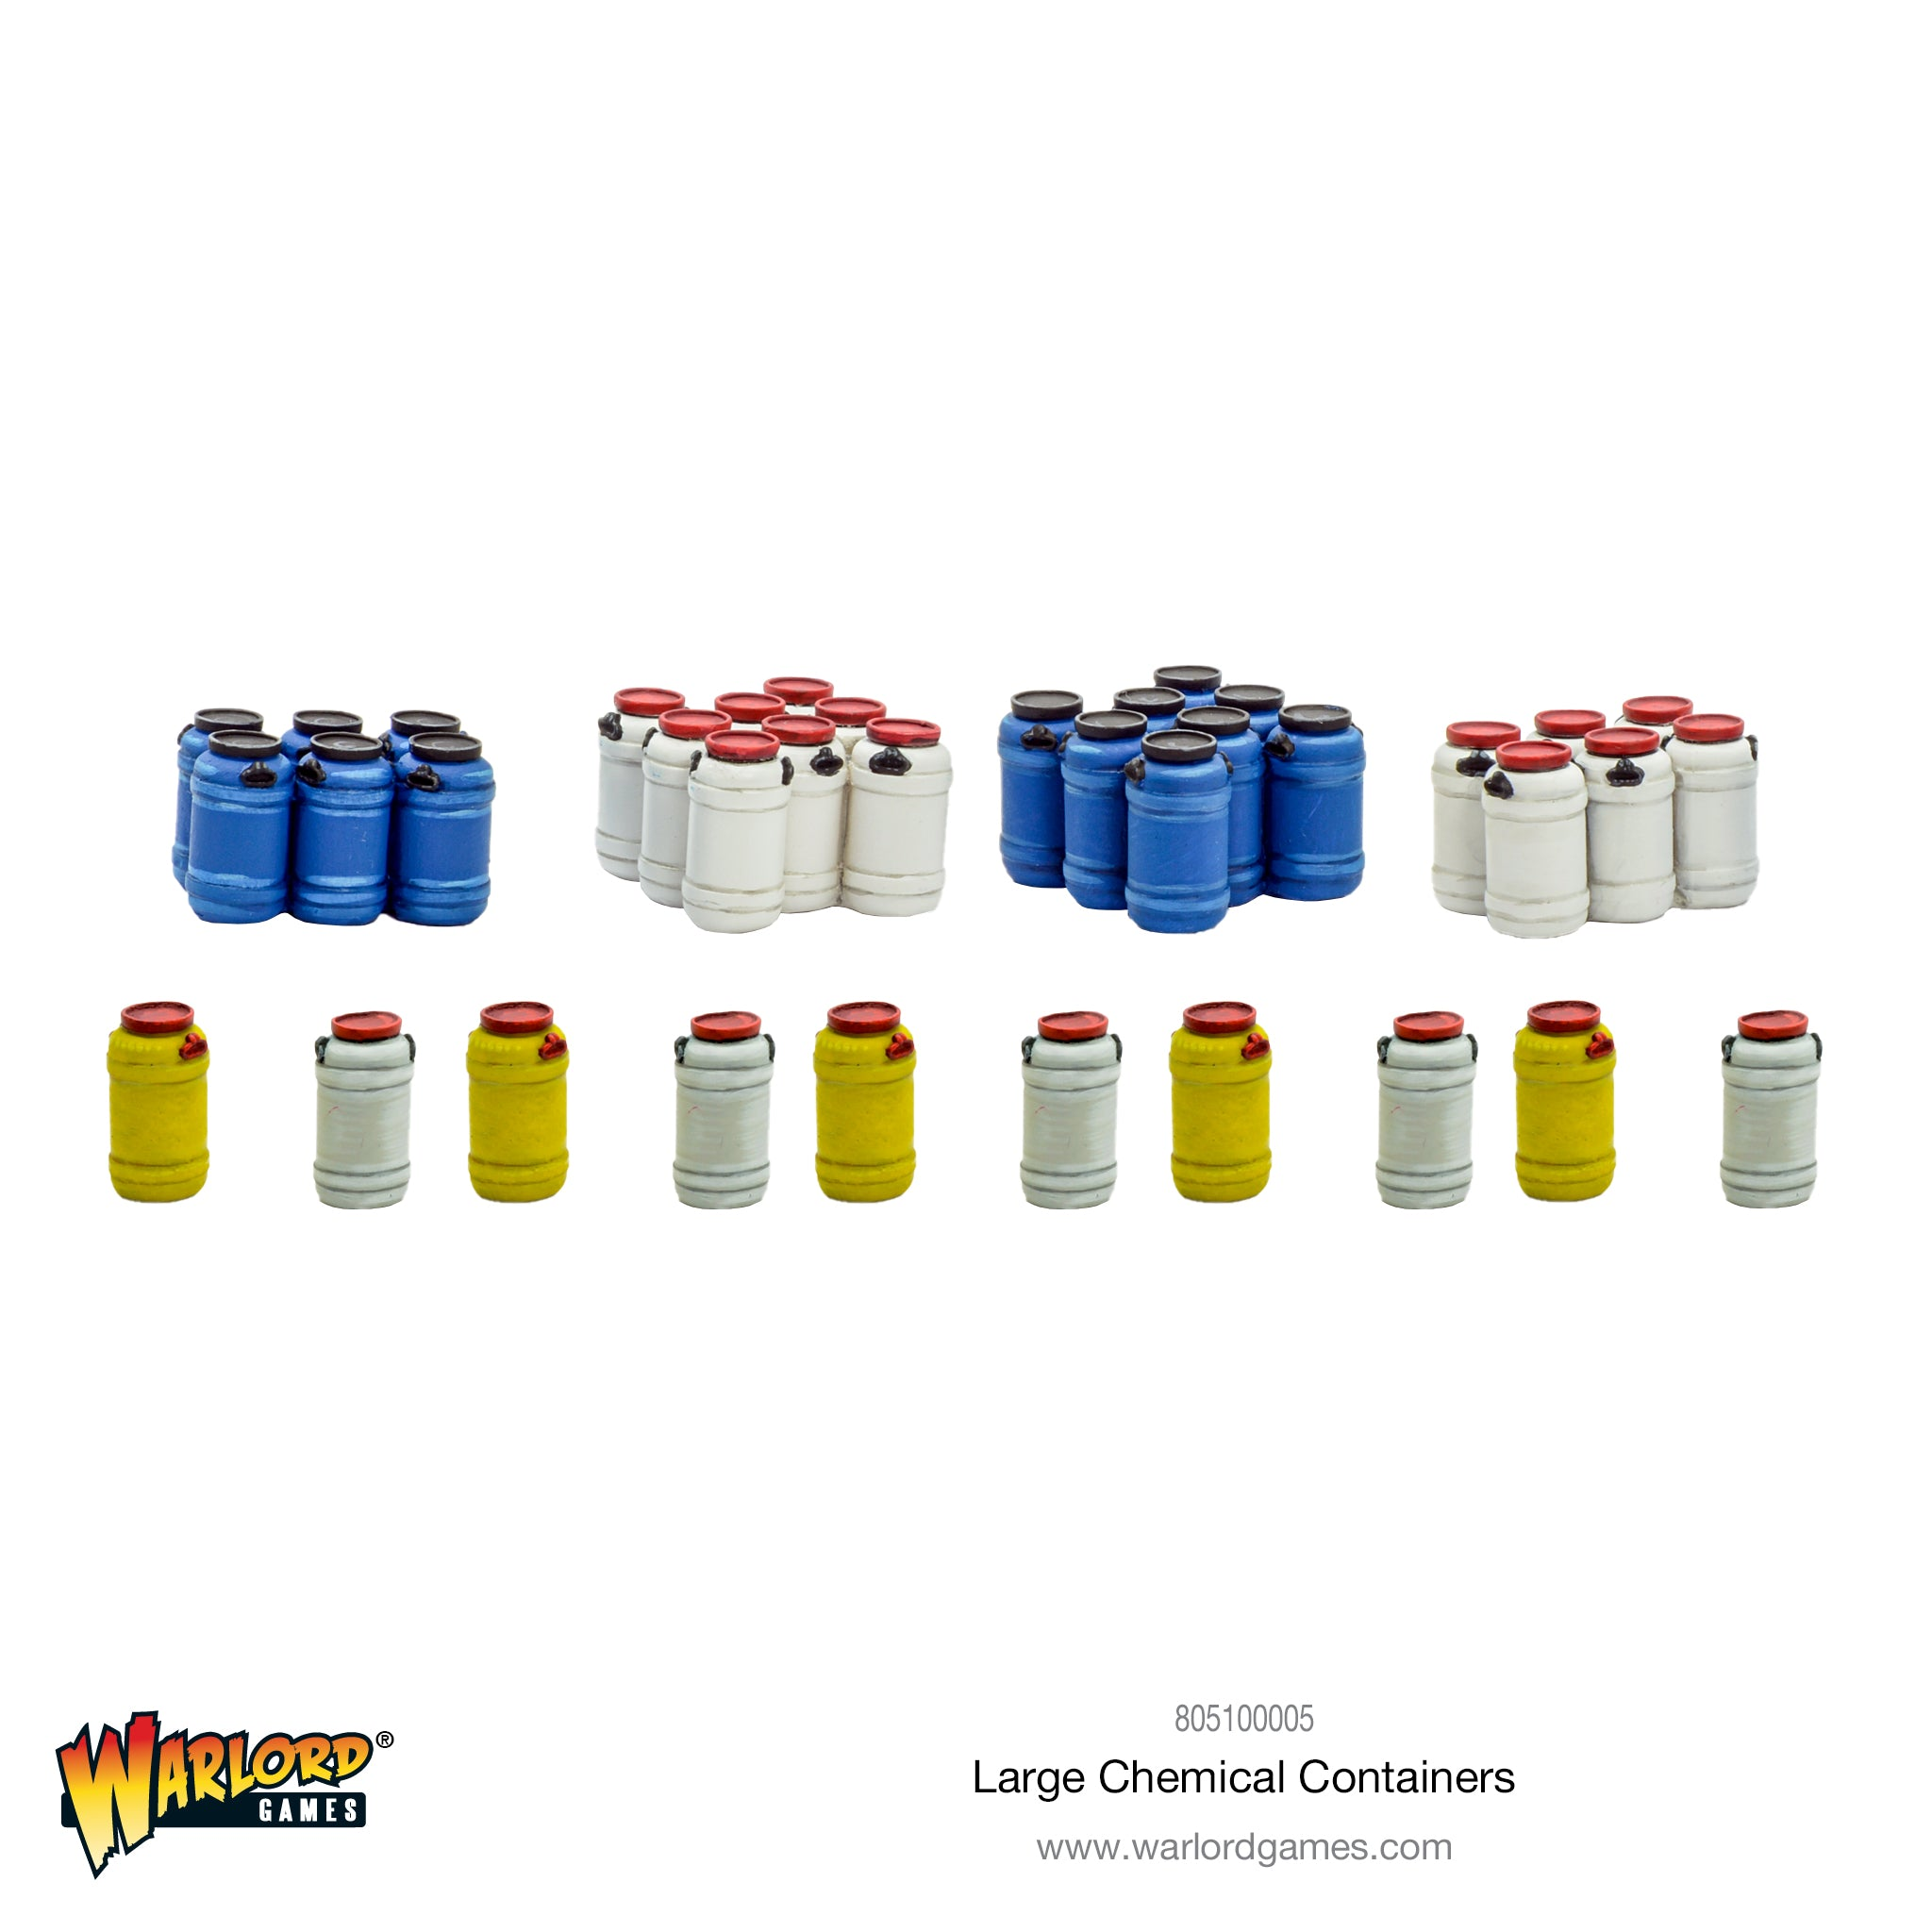 Large Chemical Containers